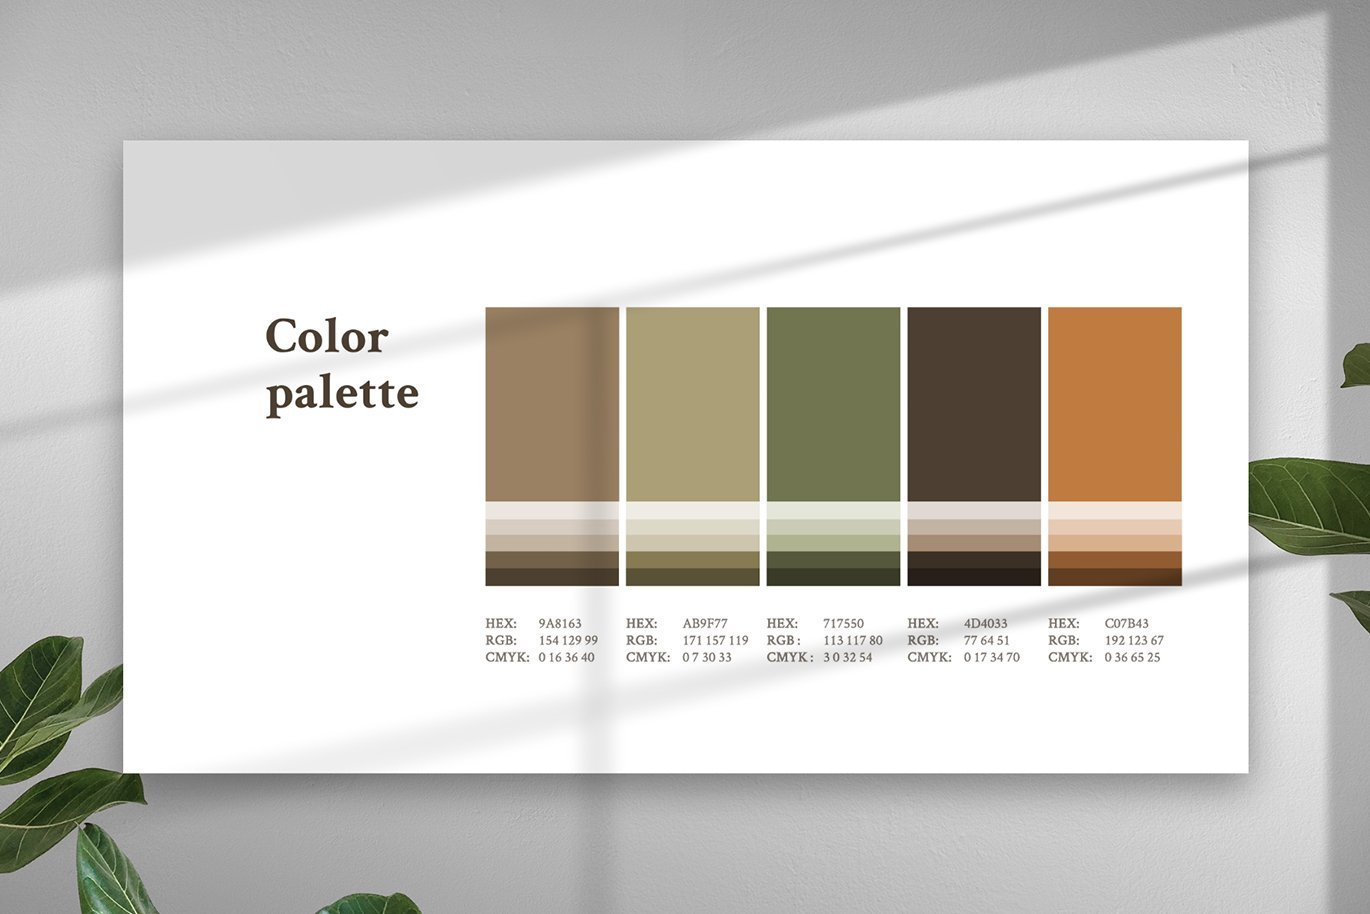 Template design is flexible, so you can customize color and elements in your style.